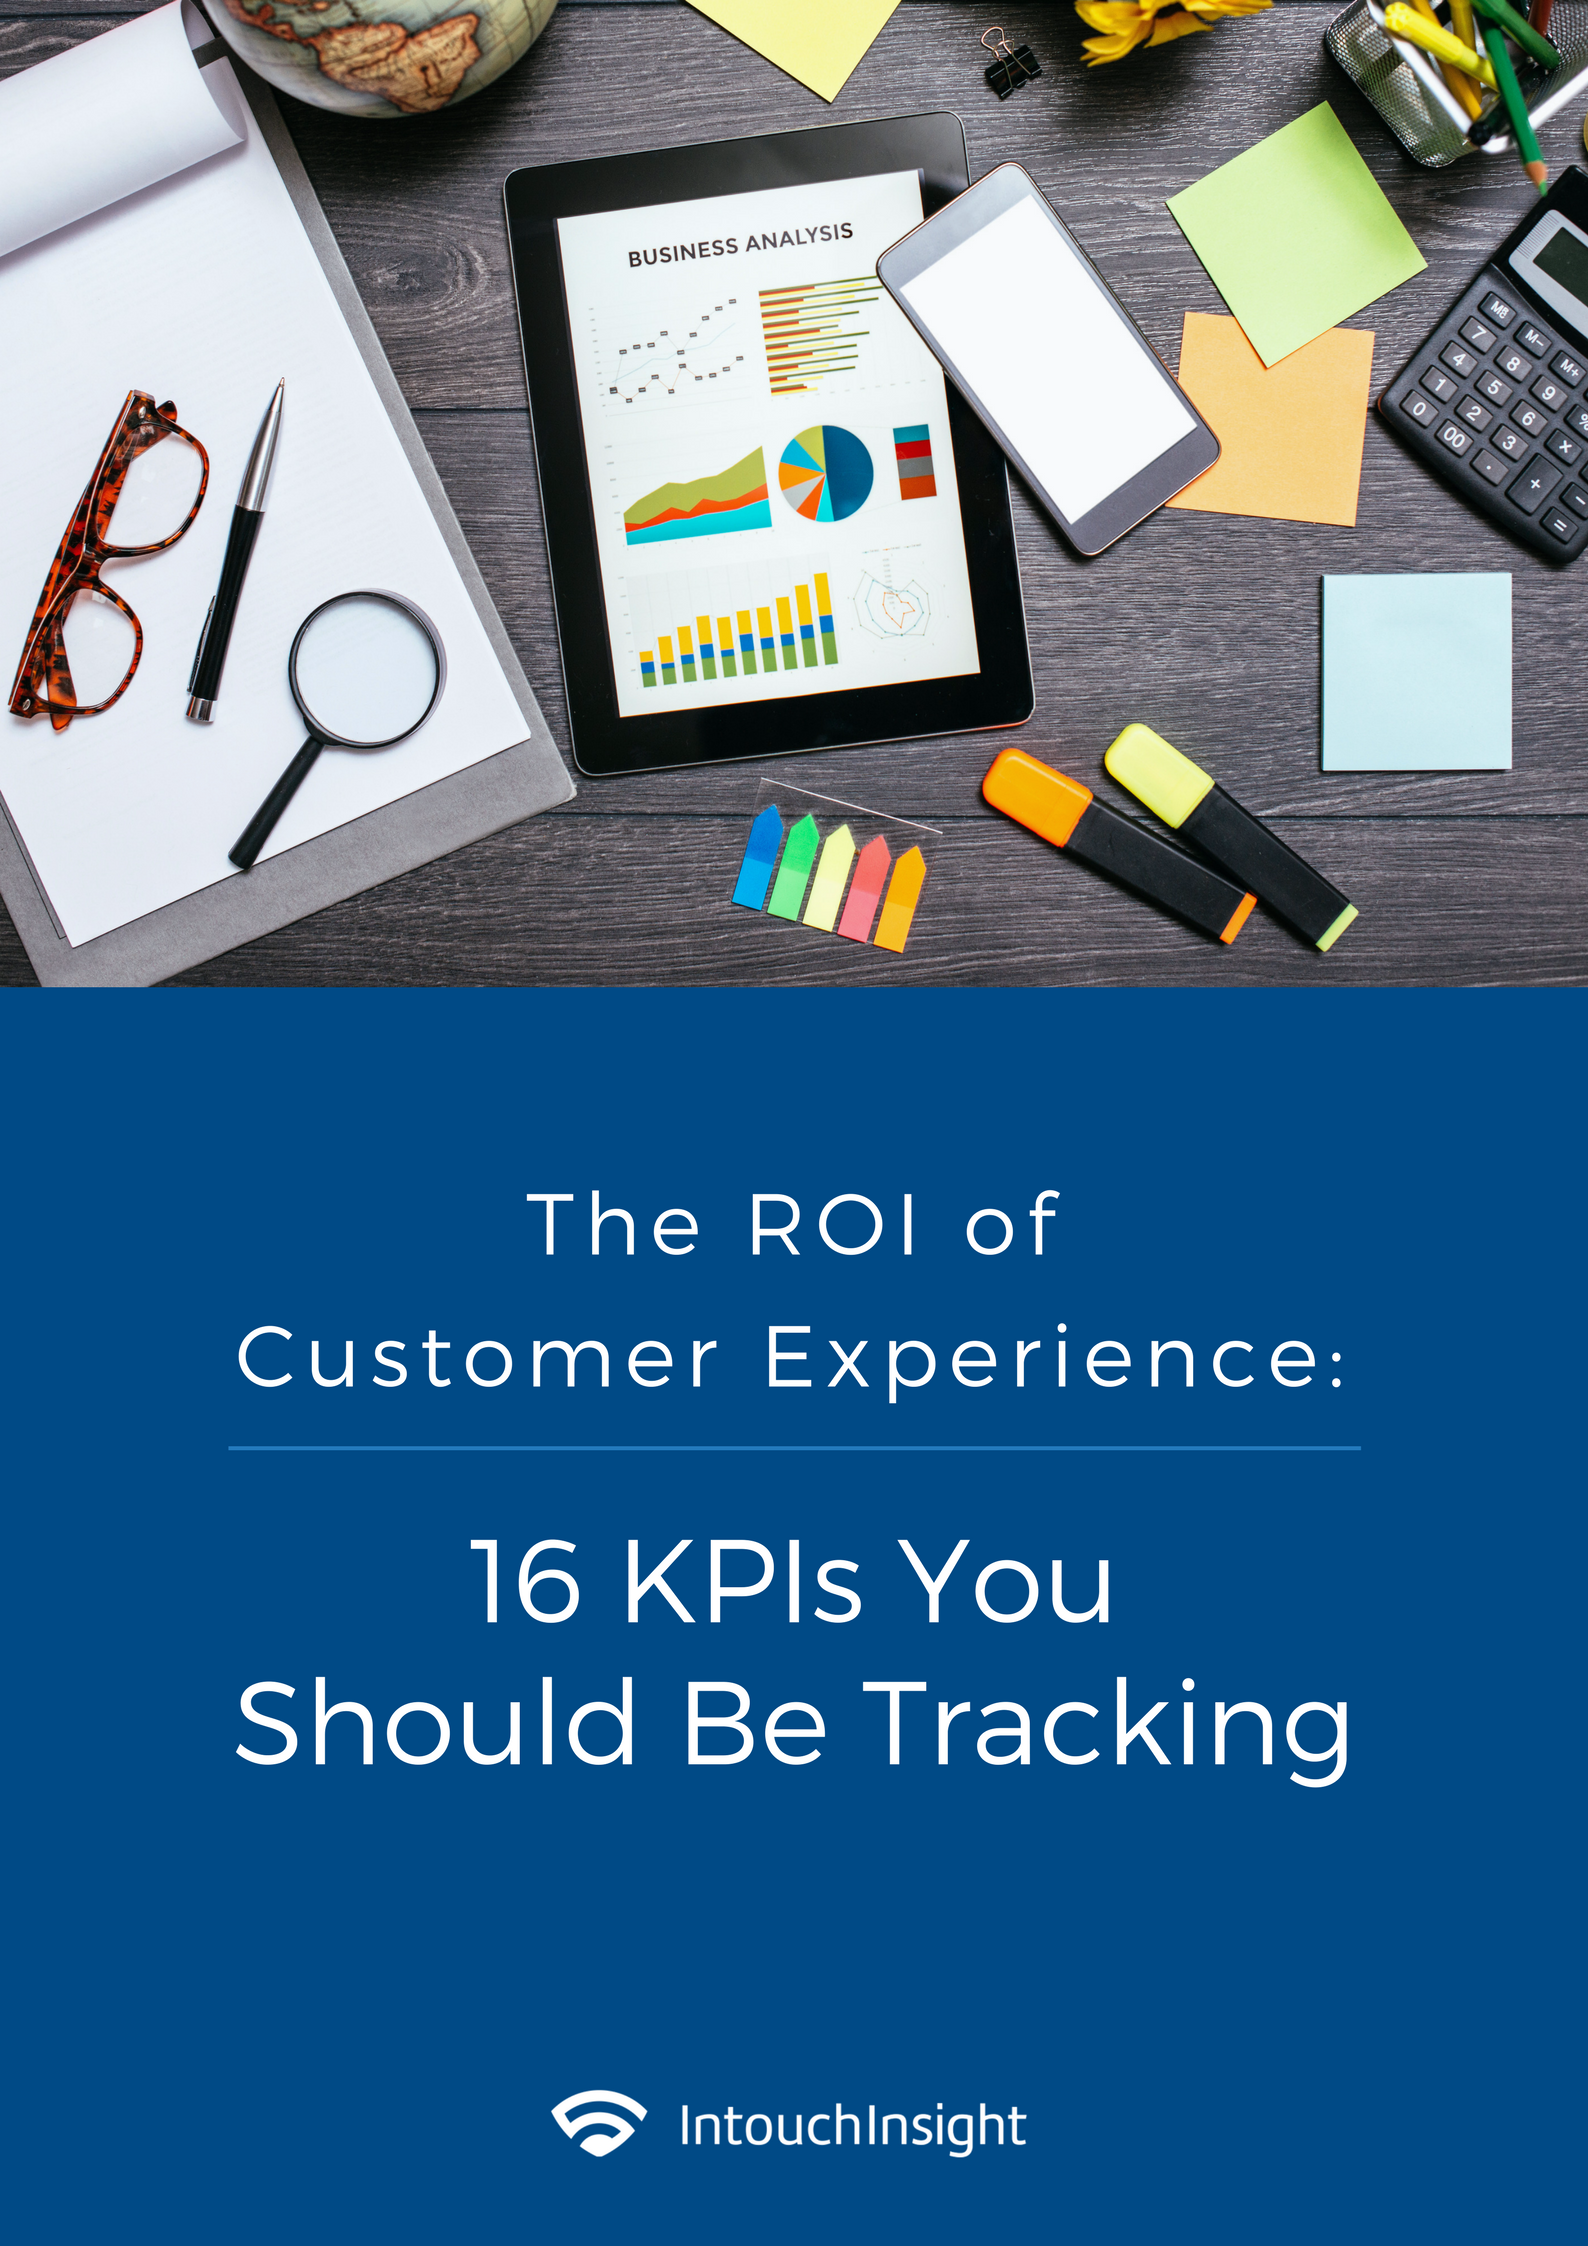 The ROI of Customer Experience: 16 KPIs You Should Be Tracking